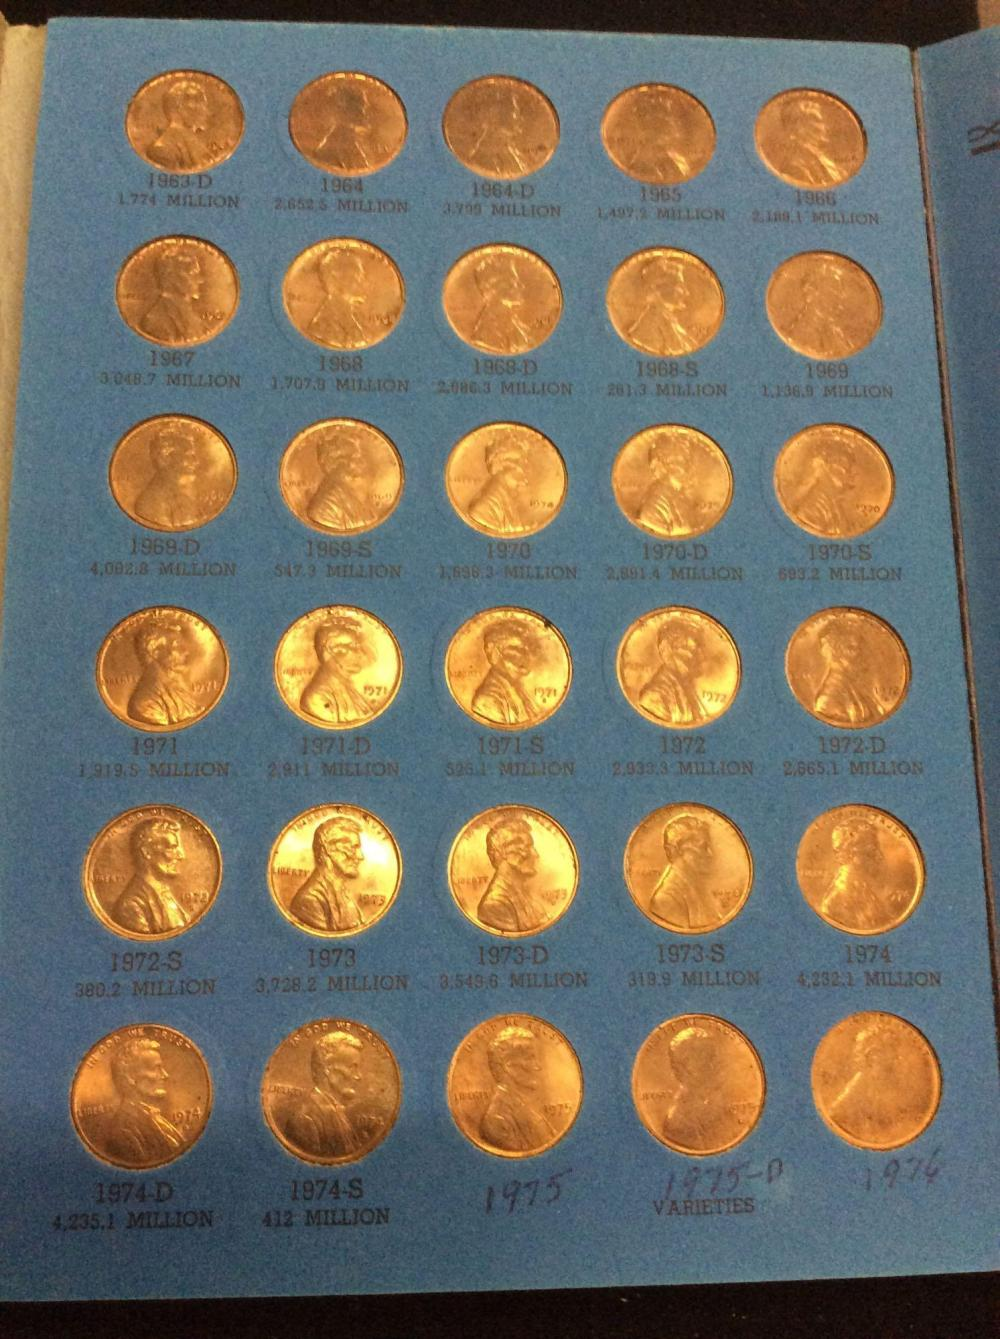 4 lincoln penny collector books, 1909-1940 and 1959-1997